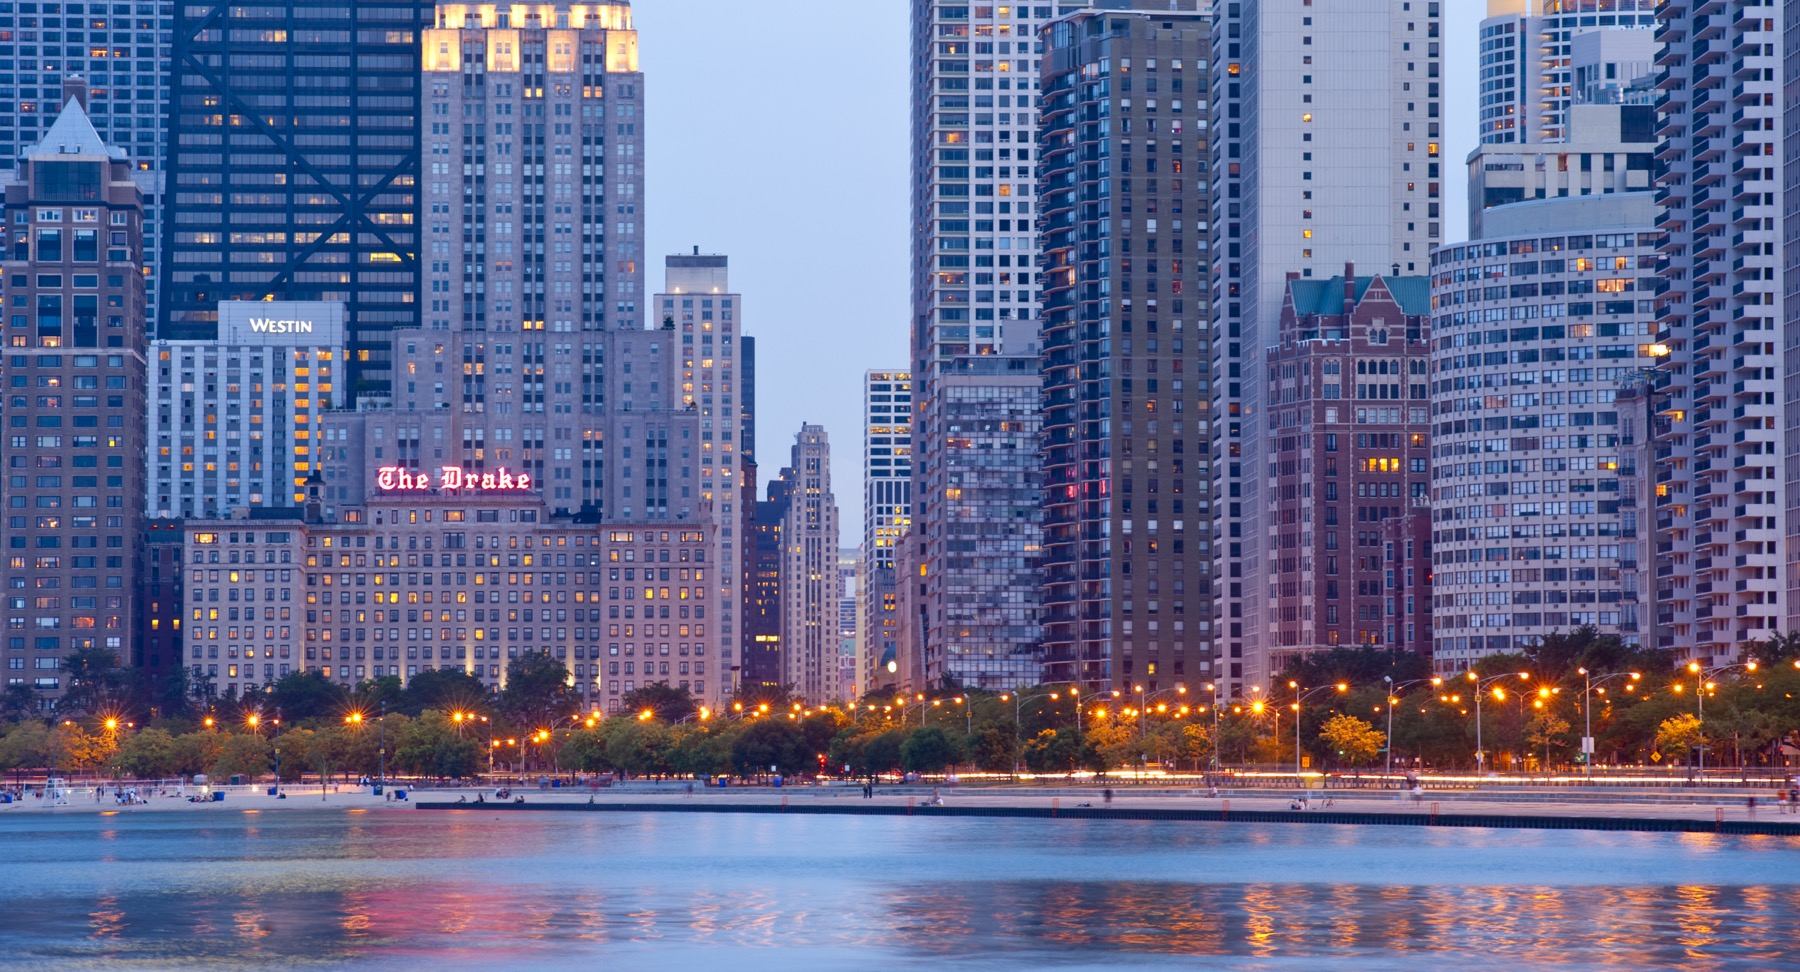 Chicago hotels in the Loop